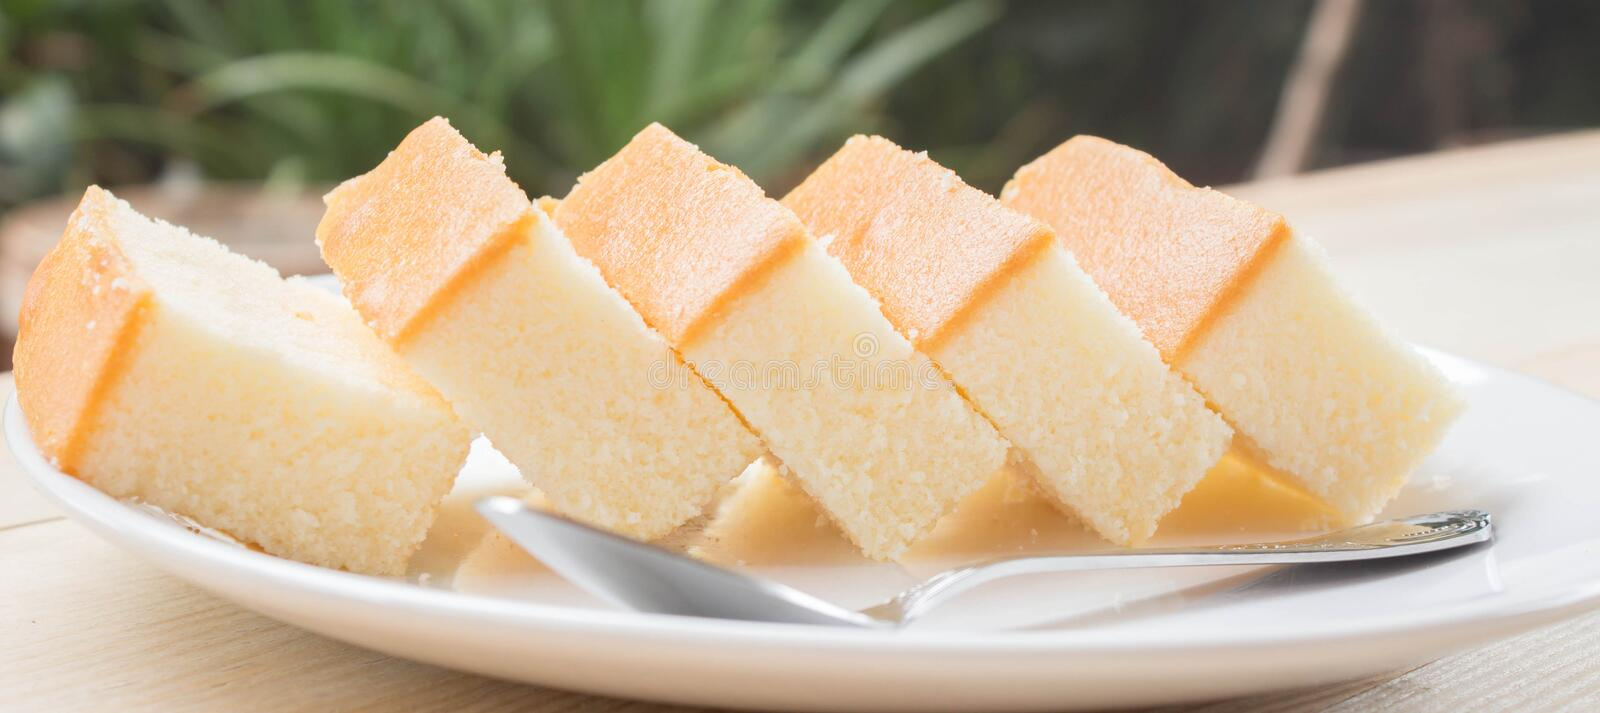 Butter Cake Recipe In Sinhala Download: Soft Butter Cake Stock Photography